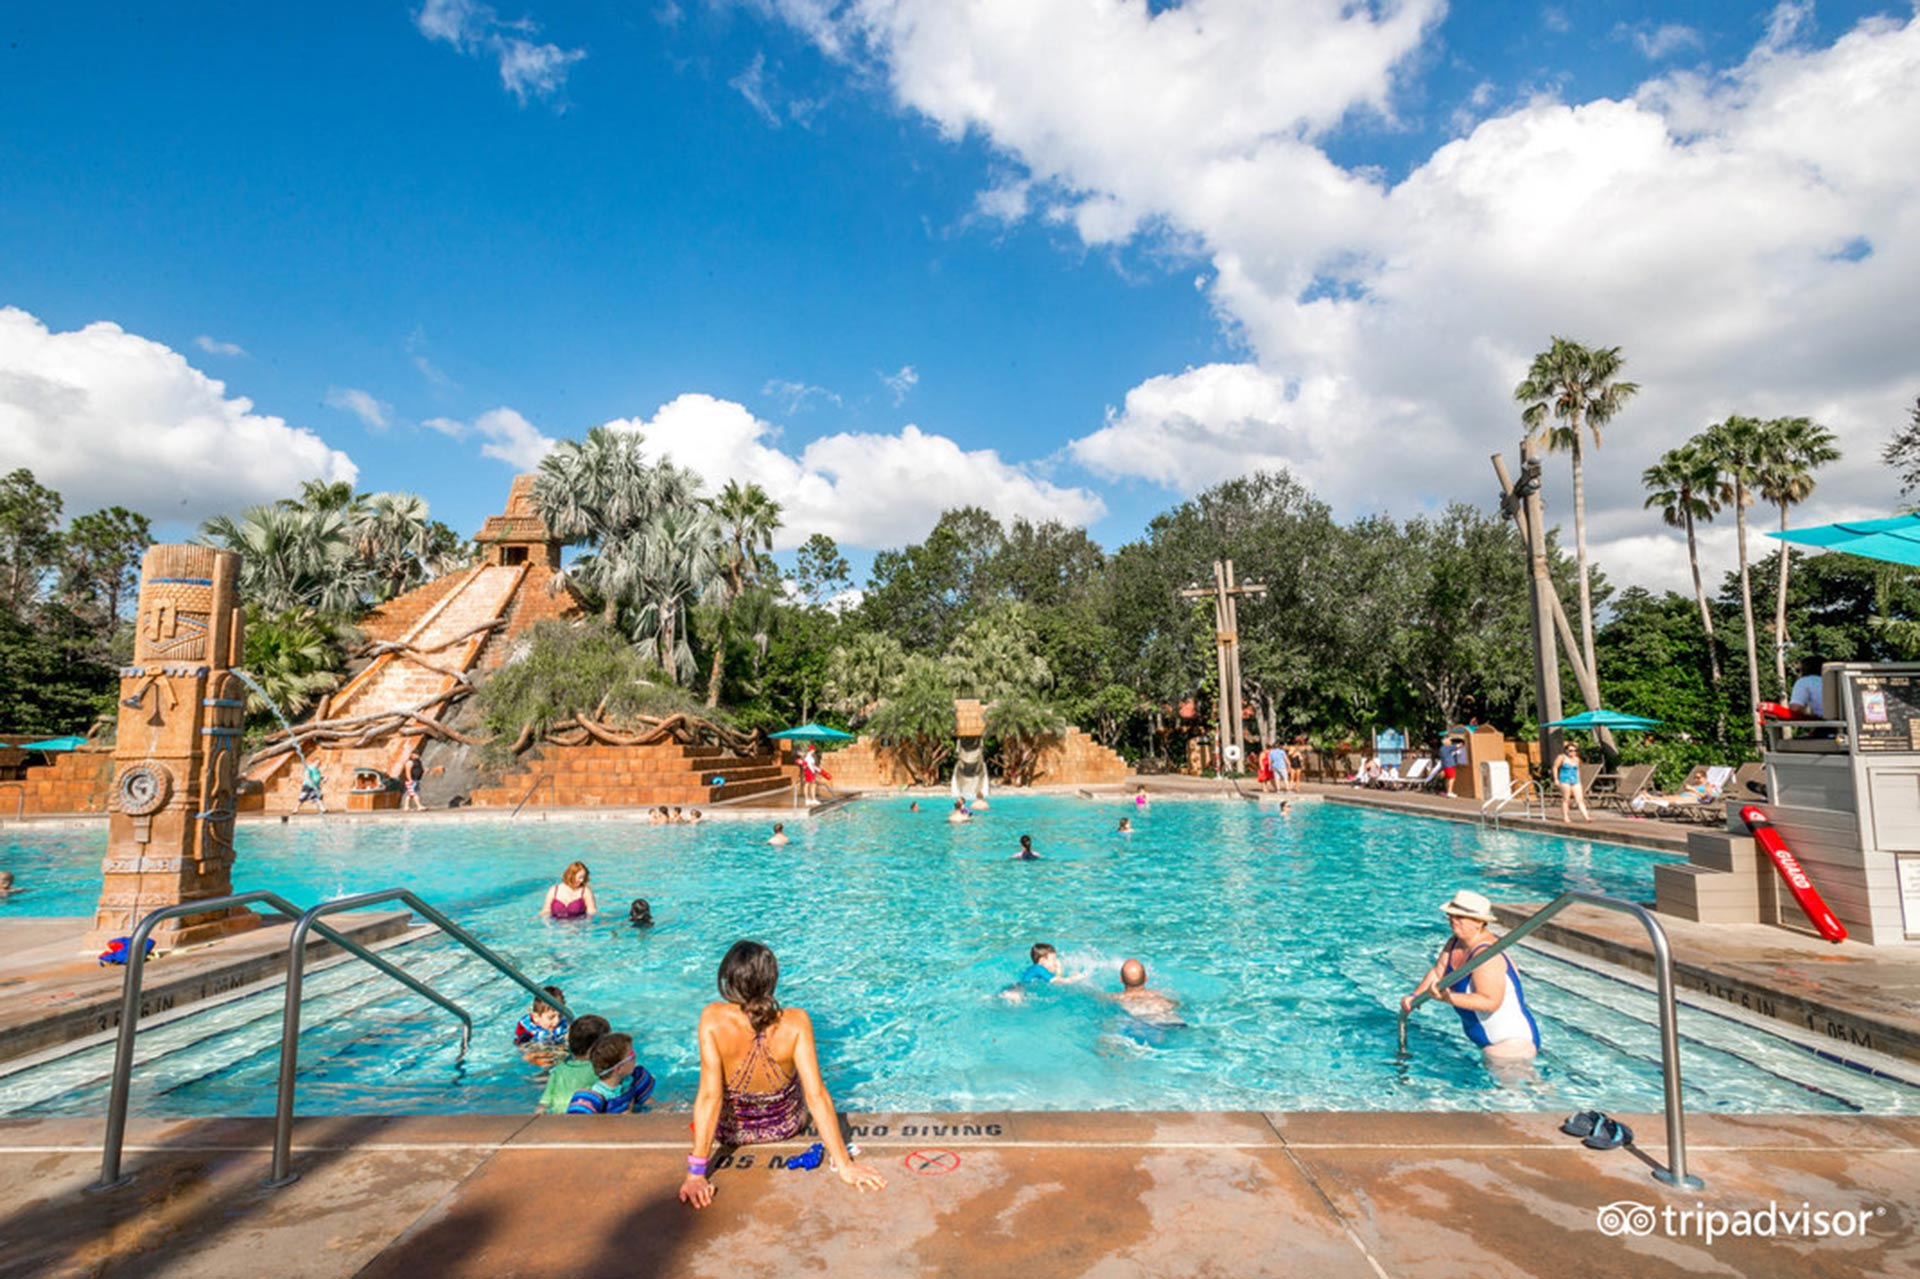 Lost City of Cibola Pool at Disney's Coronado Springs Resort